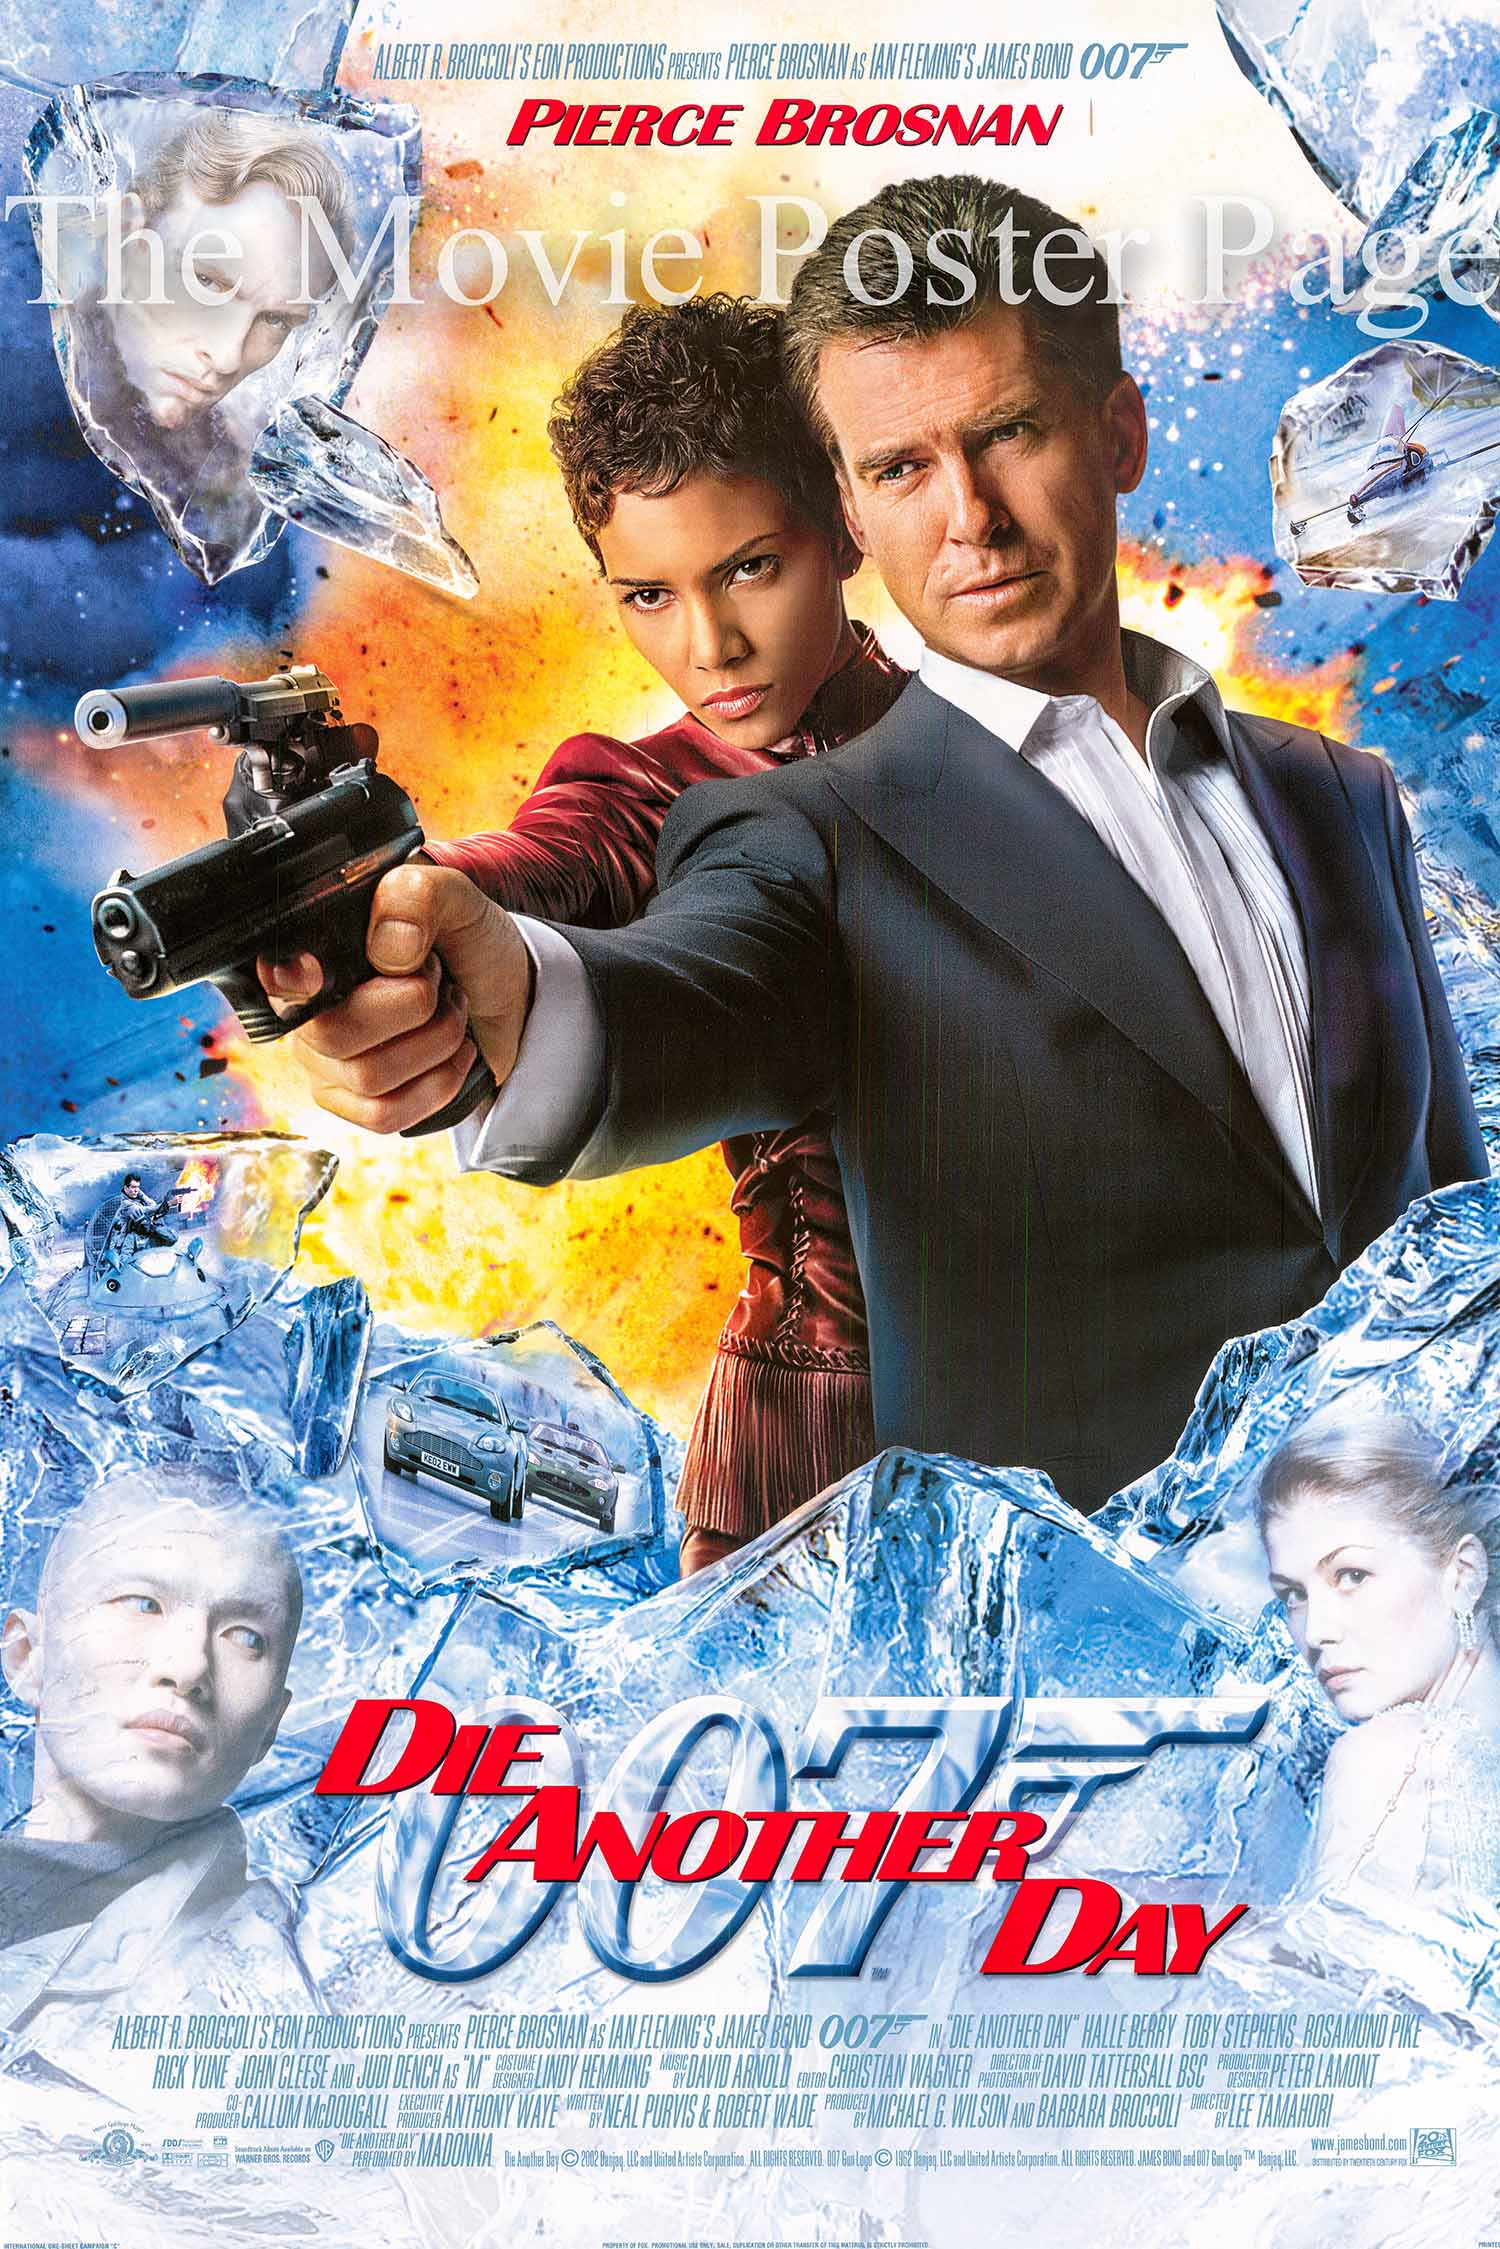 Pictured is an international one-sheet poster made to promote the 2002 Lee Tamahori film Die another Day starring Pierce Brosnan as James Bond.